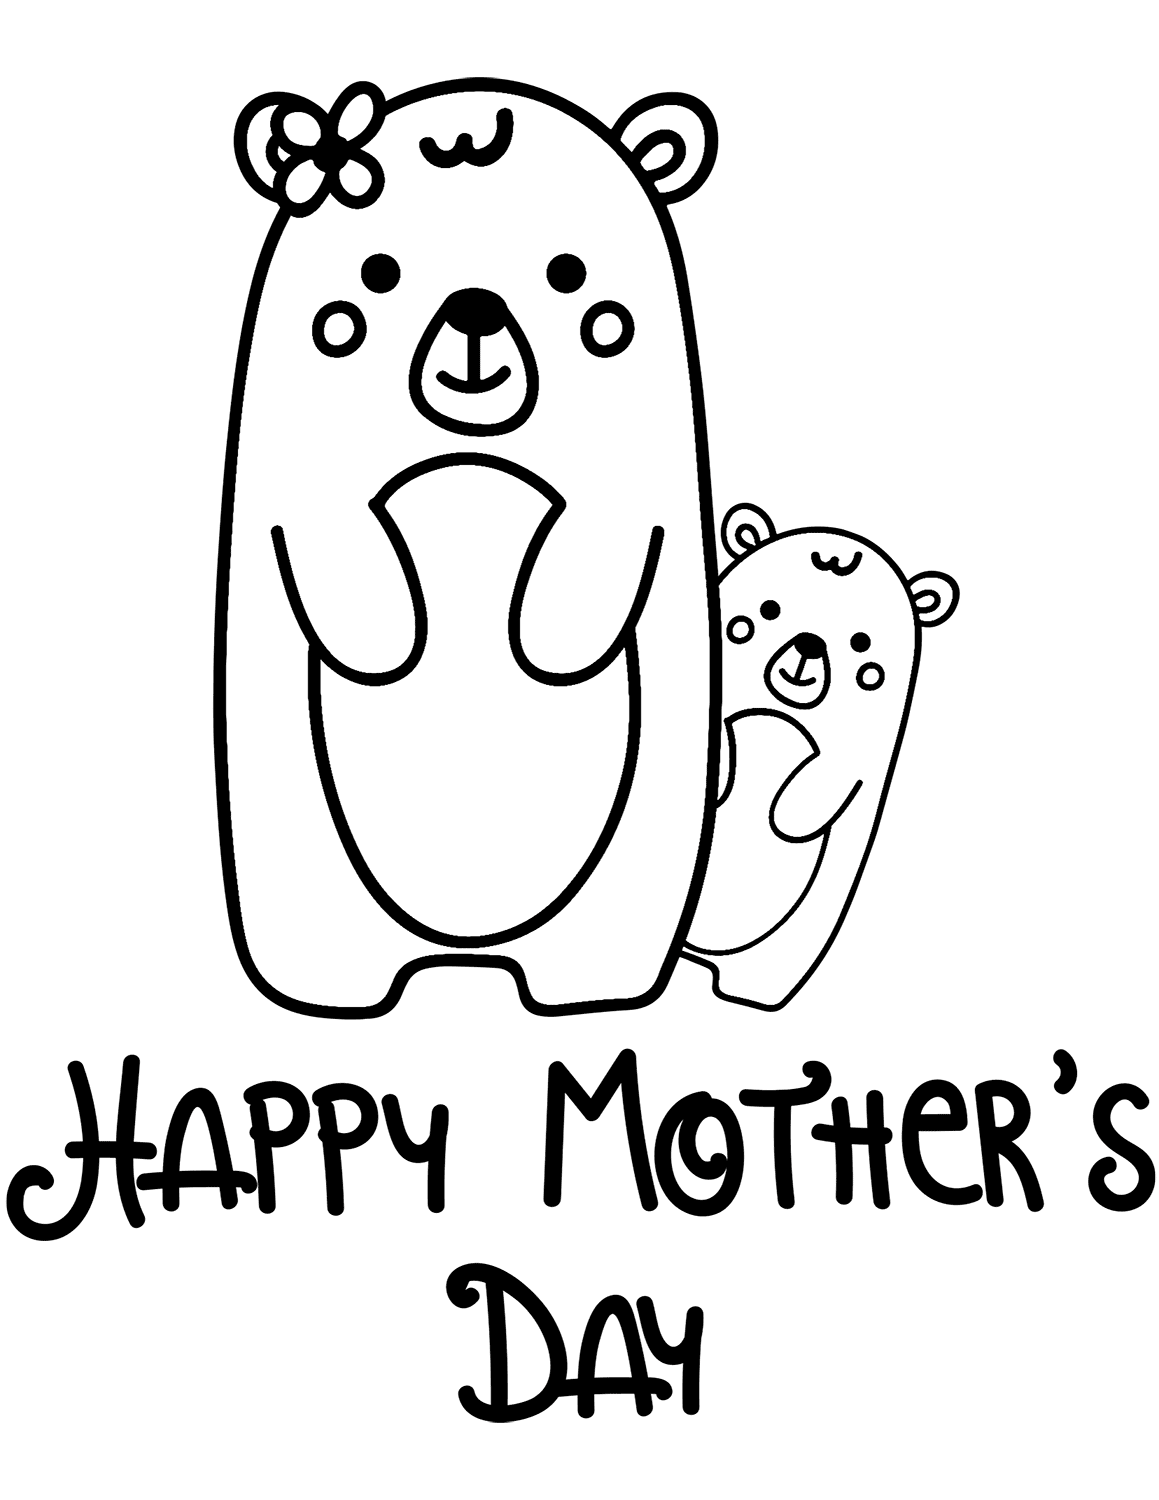 mothers day colouring pages for toddlers the 25 best mothers day coloring pages ideas on pinterest day mothers pages for colouring toddlers